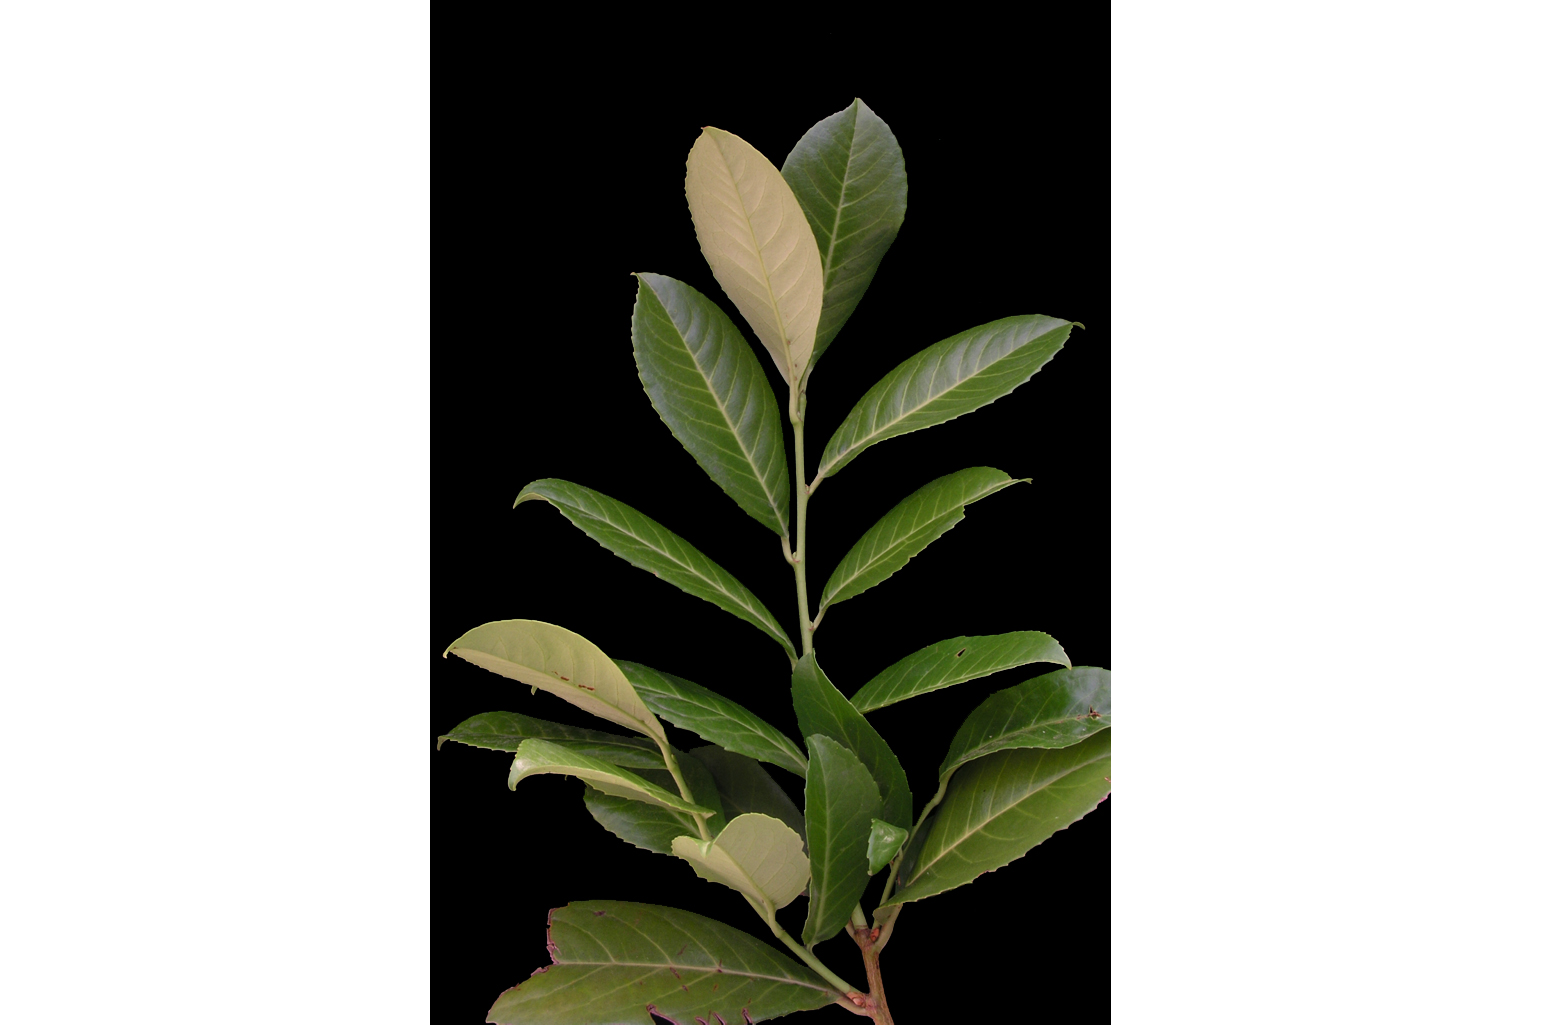 Branch with 10-14 cm-long leaves that are leathery and glossy above